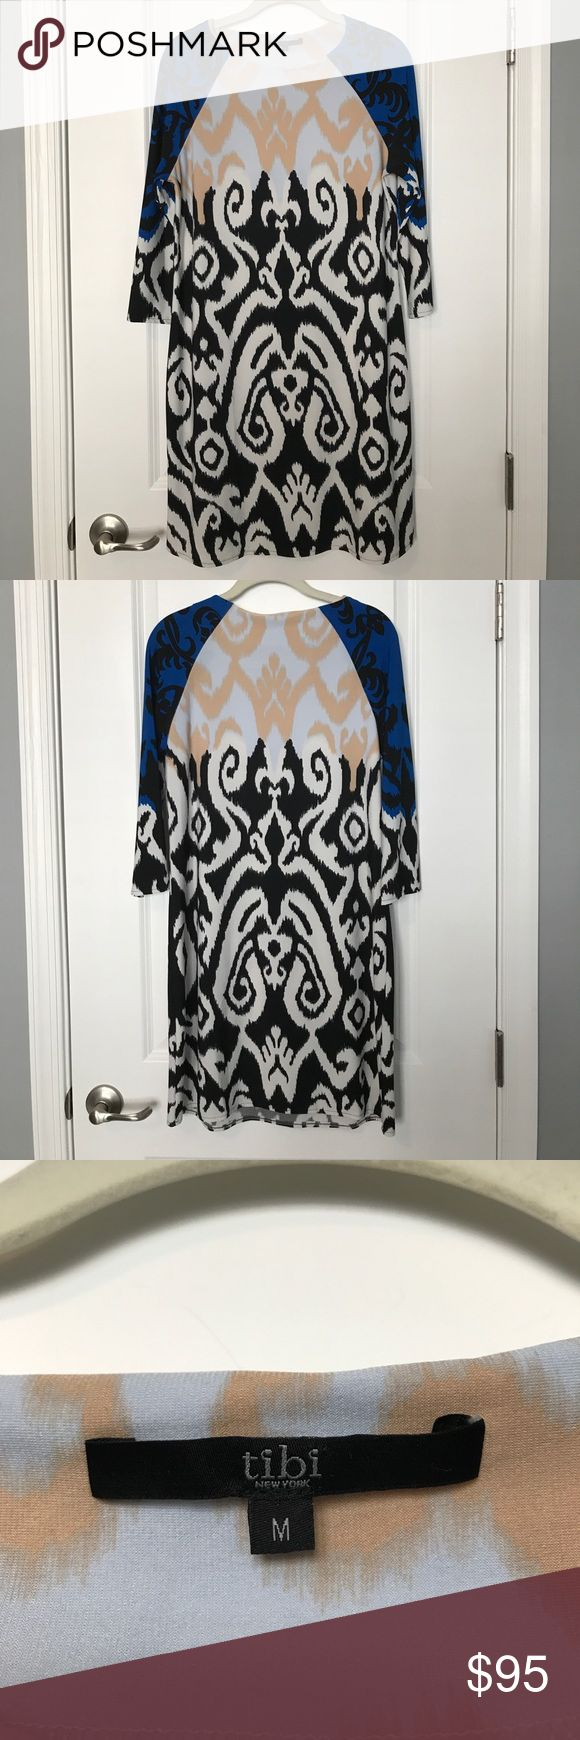 """Tibi Dress Any RHOBH fans out there?!? This dress was purchased from Kyle by Alene Too in Beverly Hills, CA.                                          Never worn!                                                                                 3/4 sleeves                                                                               Length hits above the knee, I'm 5'6""""                                             Smoke free, pet free home Tibi Dresses Midi"""